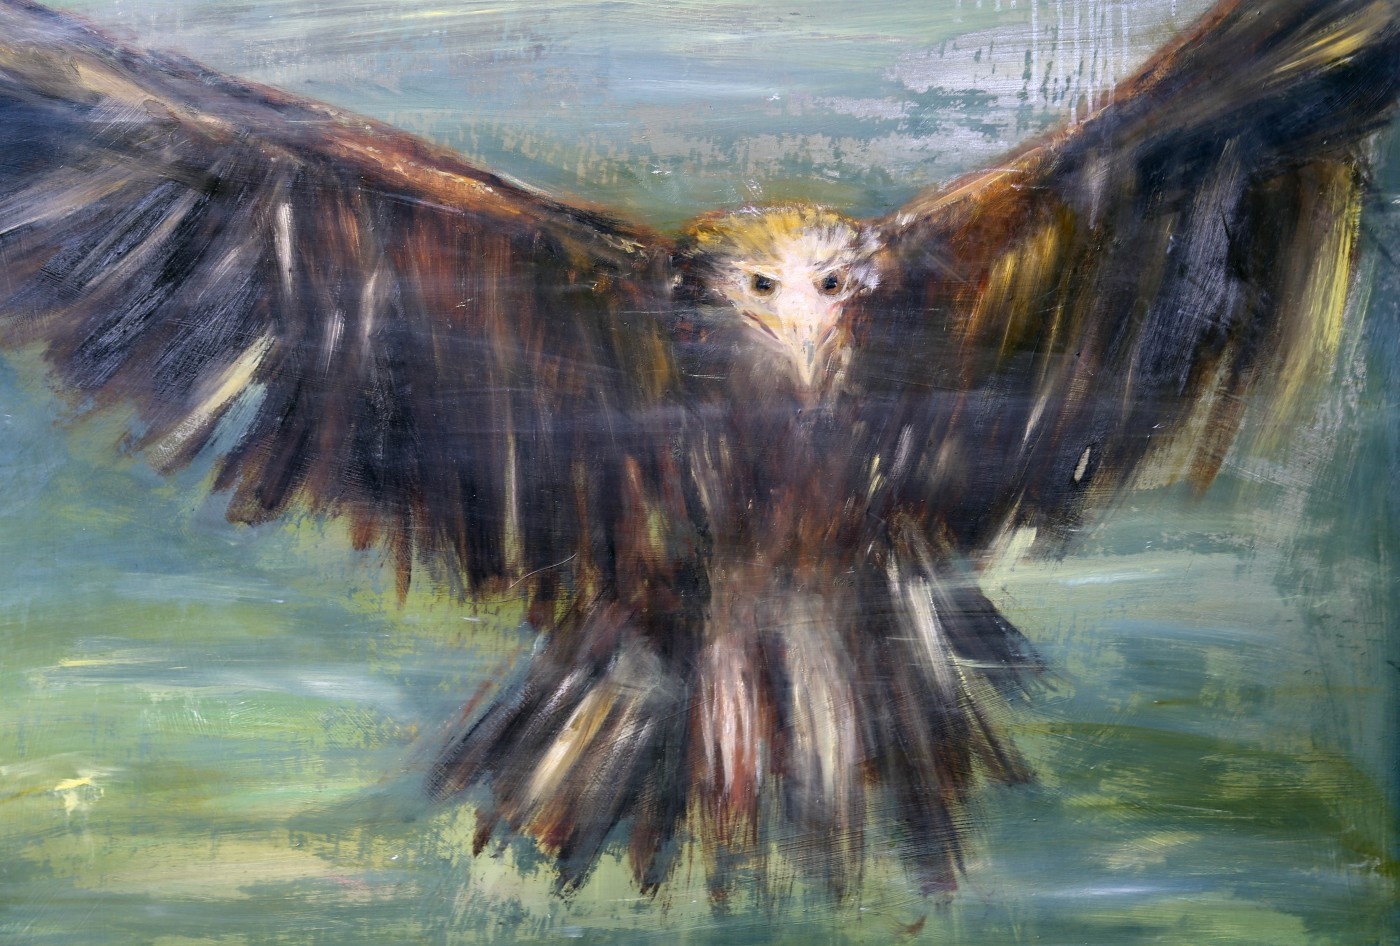 RODNEY POPLE |  Endangered (Eagle 2) 2016 |Oil on plywood  |110 x 140 cm